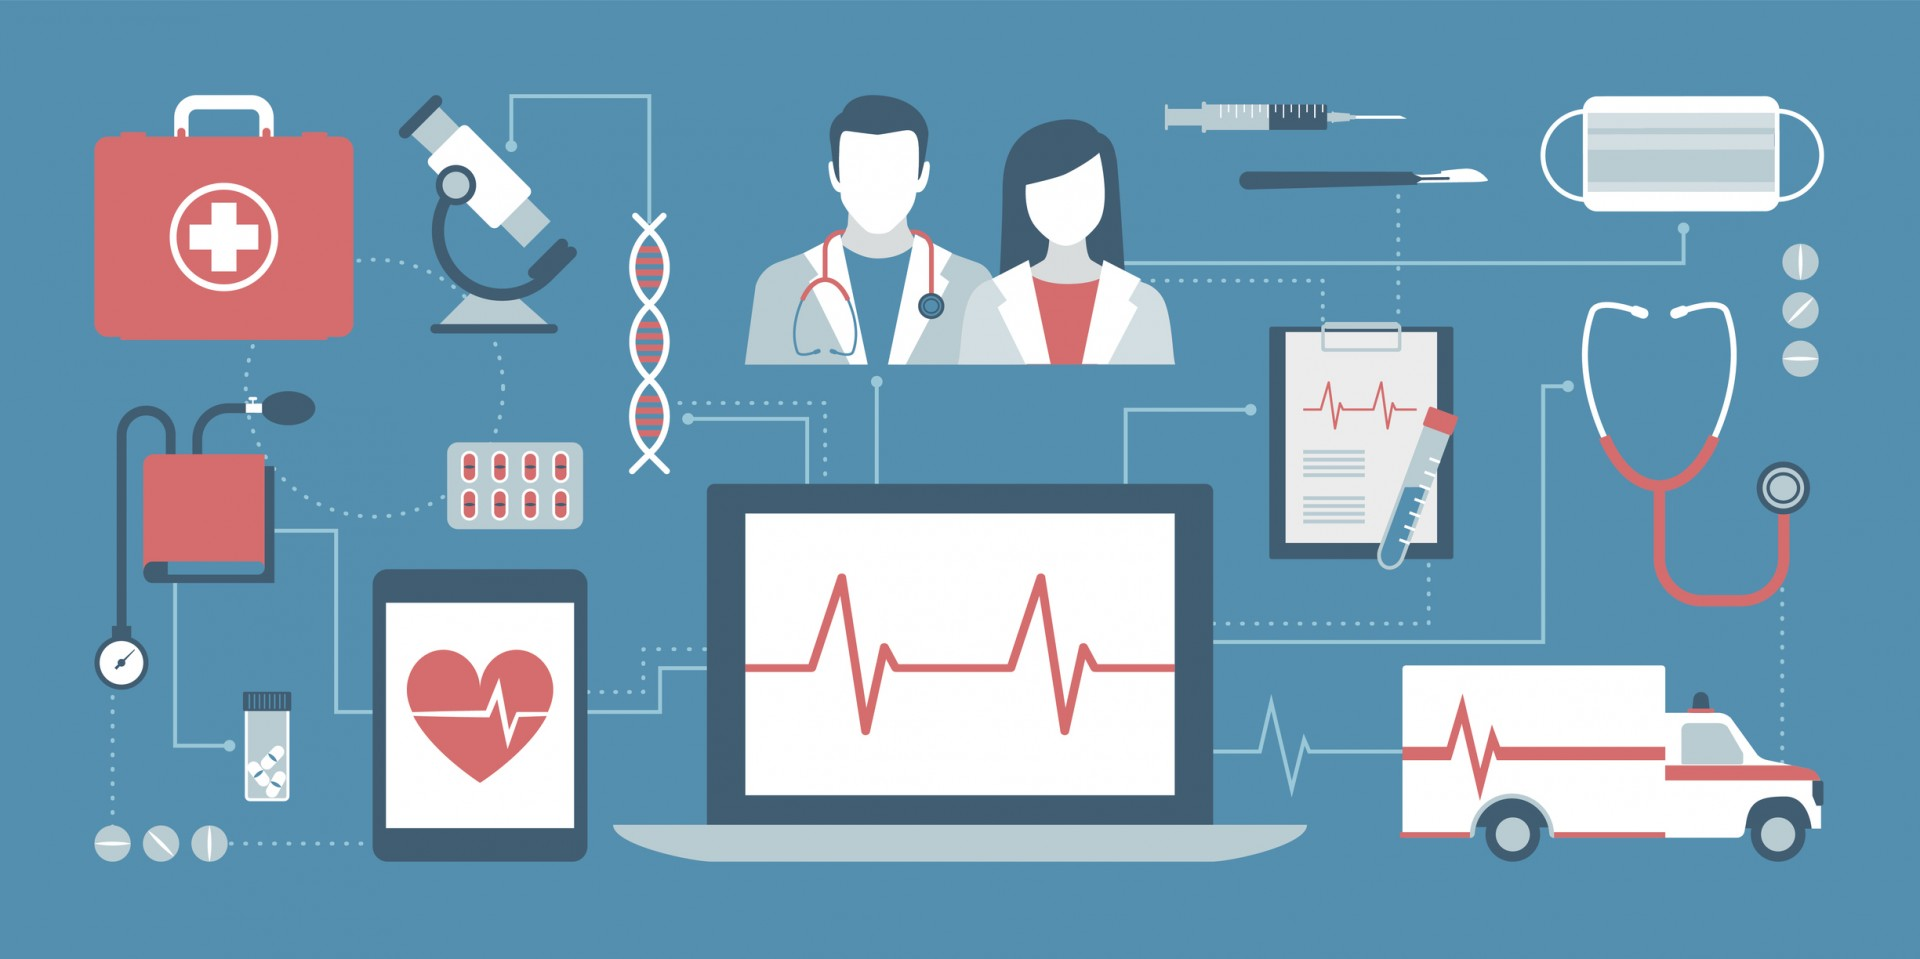 Patient Portal Access, Use Reach 52% of Healthcare Consumers